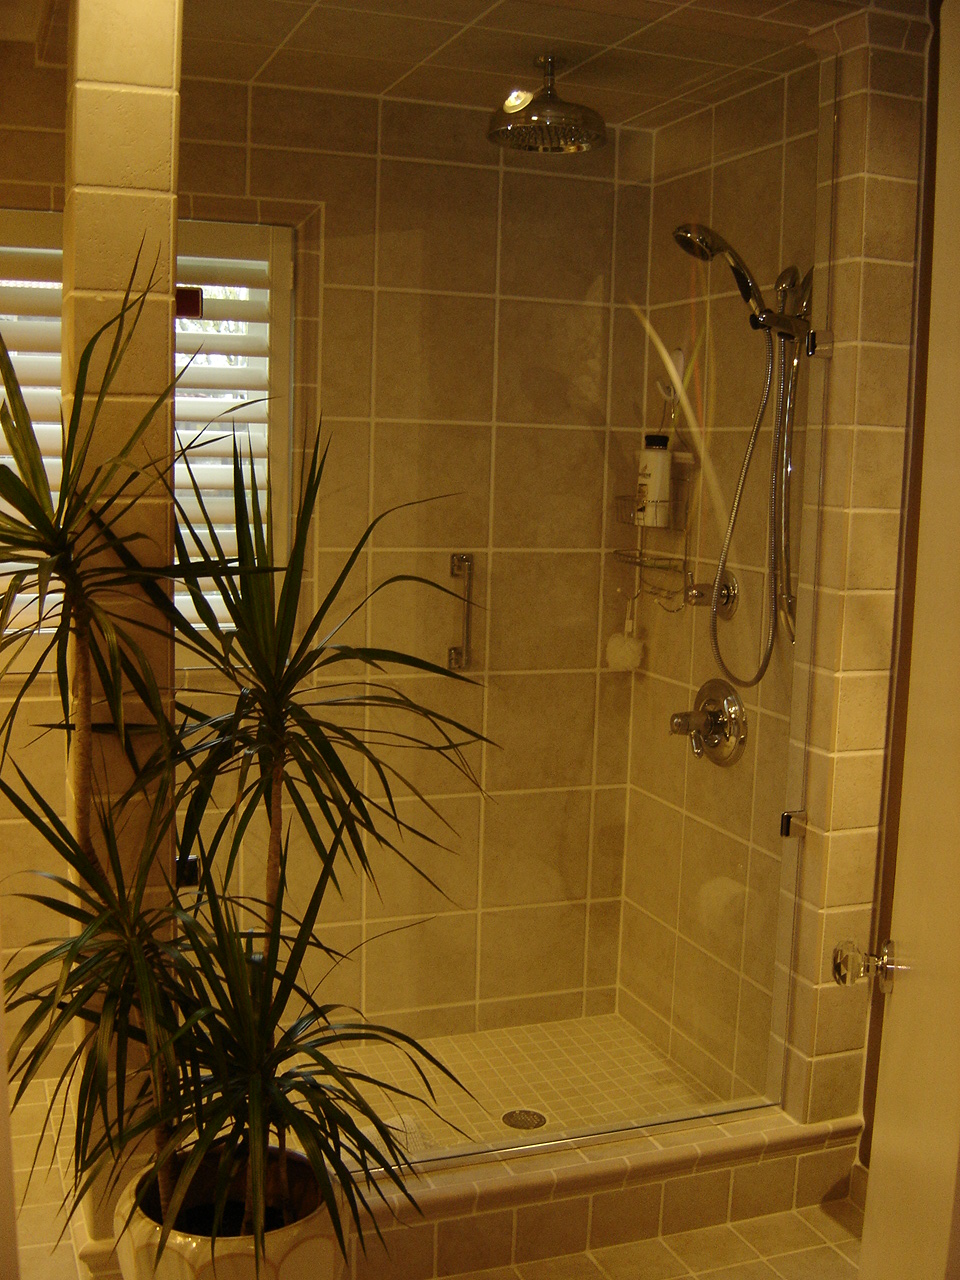 Pictures of ceramic tile showers